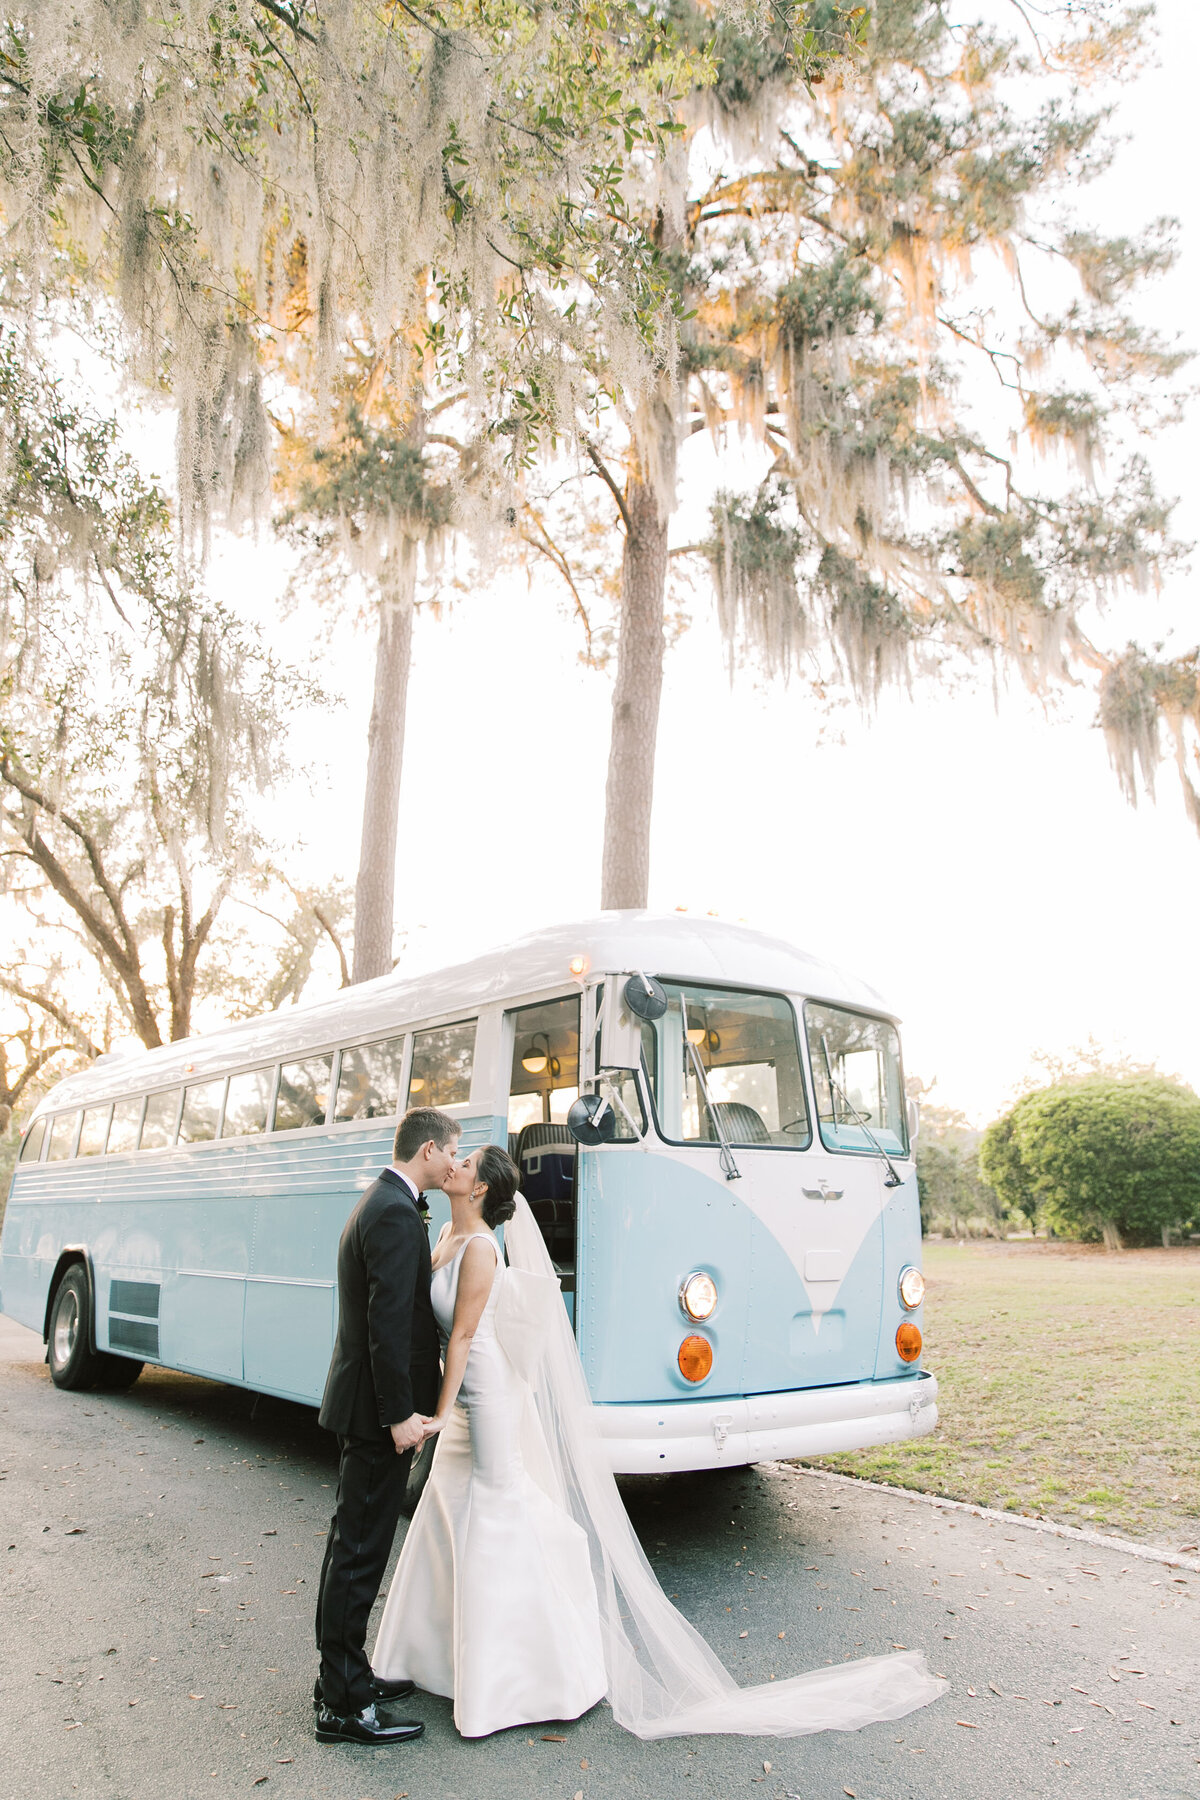 Powell_Oldfield_River_Club_Bluffton_South_Carolina_Beaufort_Savannah_Wedding_Jacksonville_Florida_Devon_Donnahoo_Photography_0982